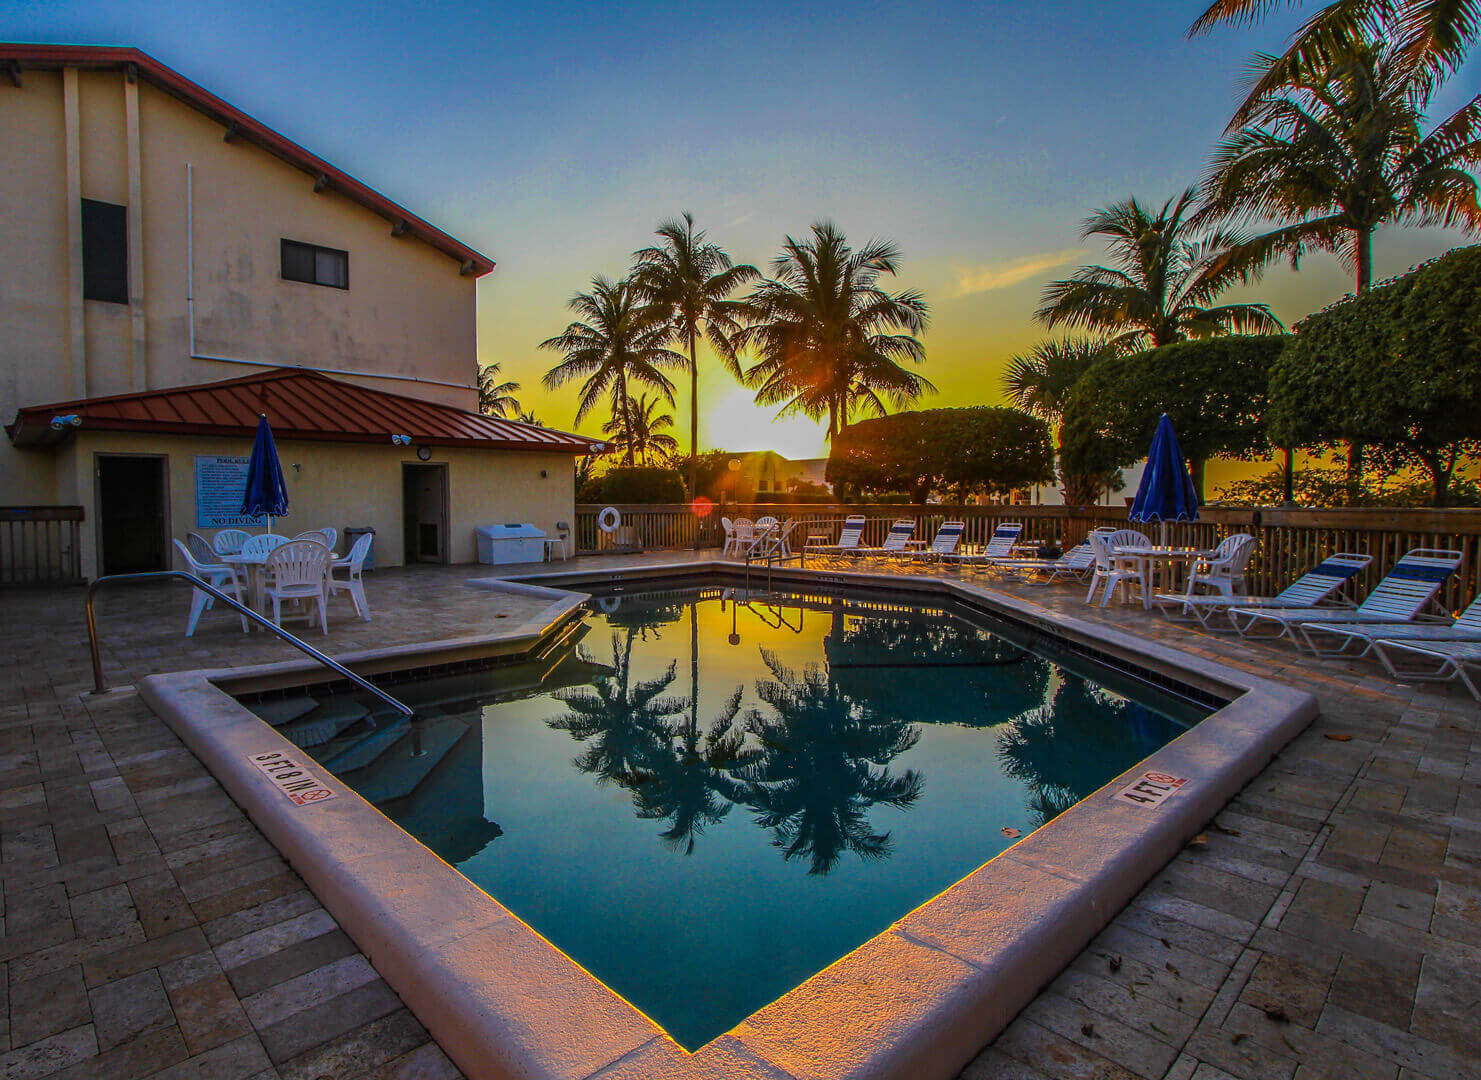 A beautiful sunset view from the pool at VRI's Florida Bay Club in Florida.